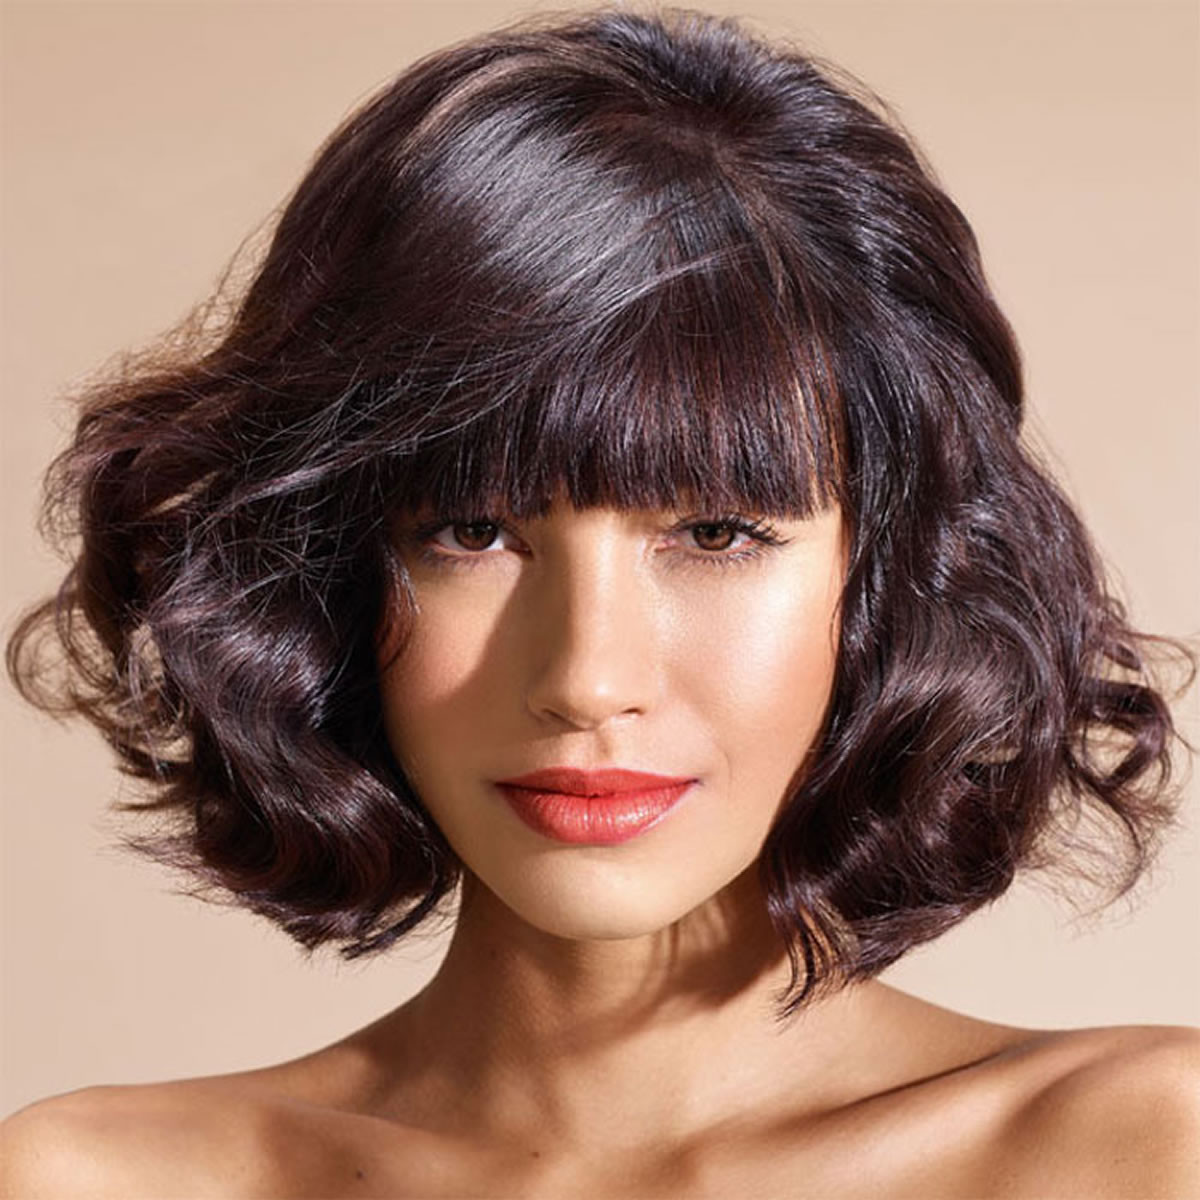 Best ideas about Trending Haircuts . Save or Pin The most Trendy Bob Hairstyles for 2018 – You are very Now.